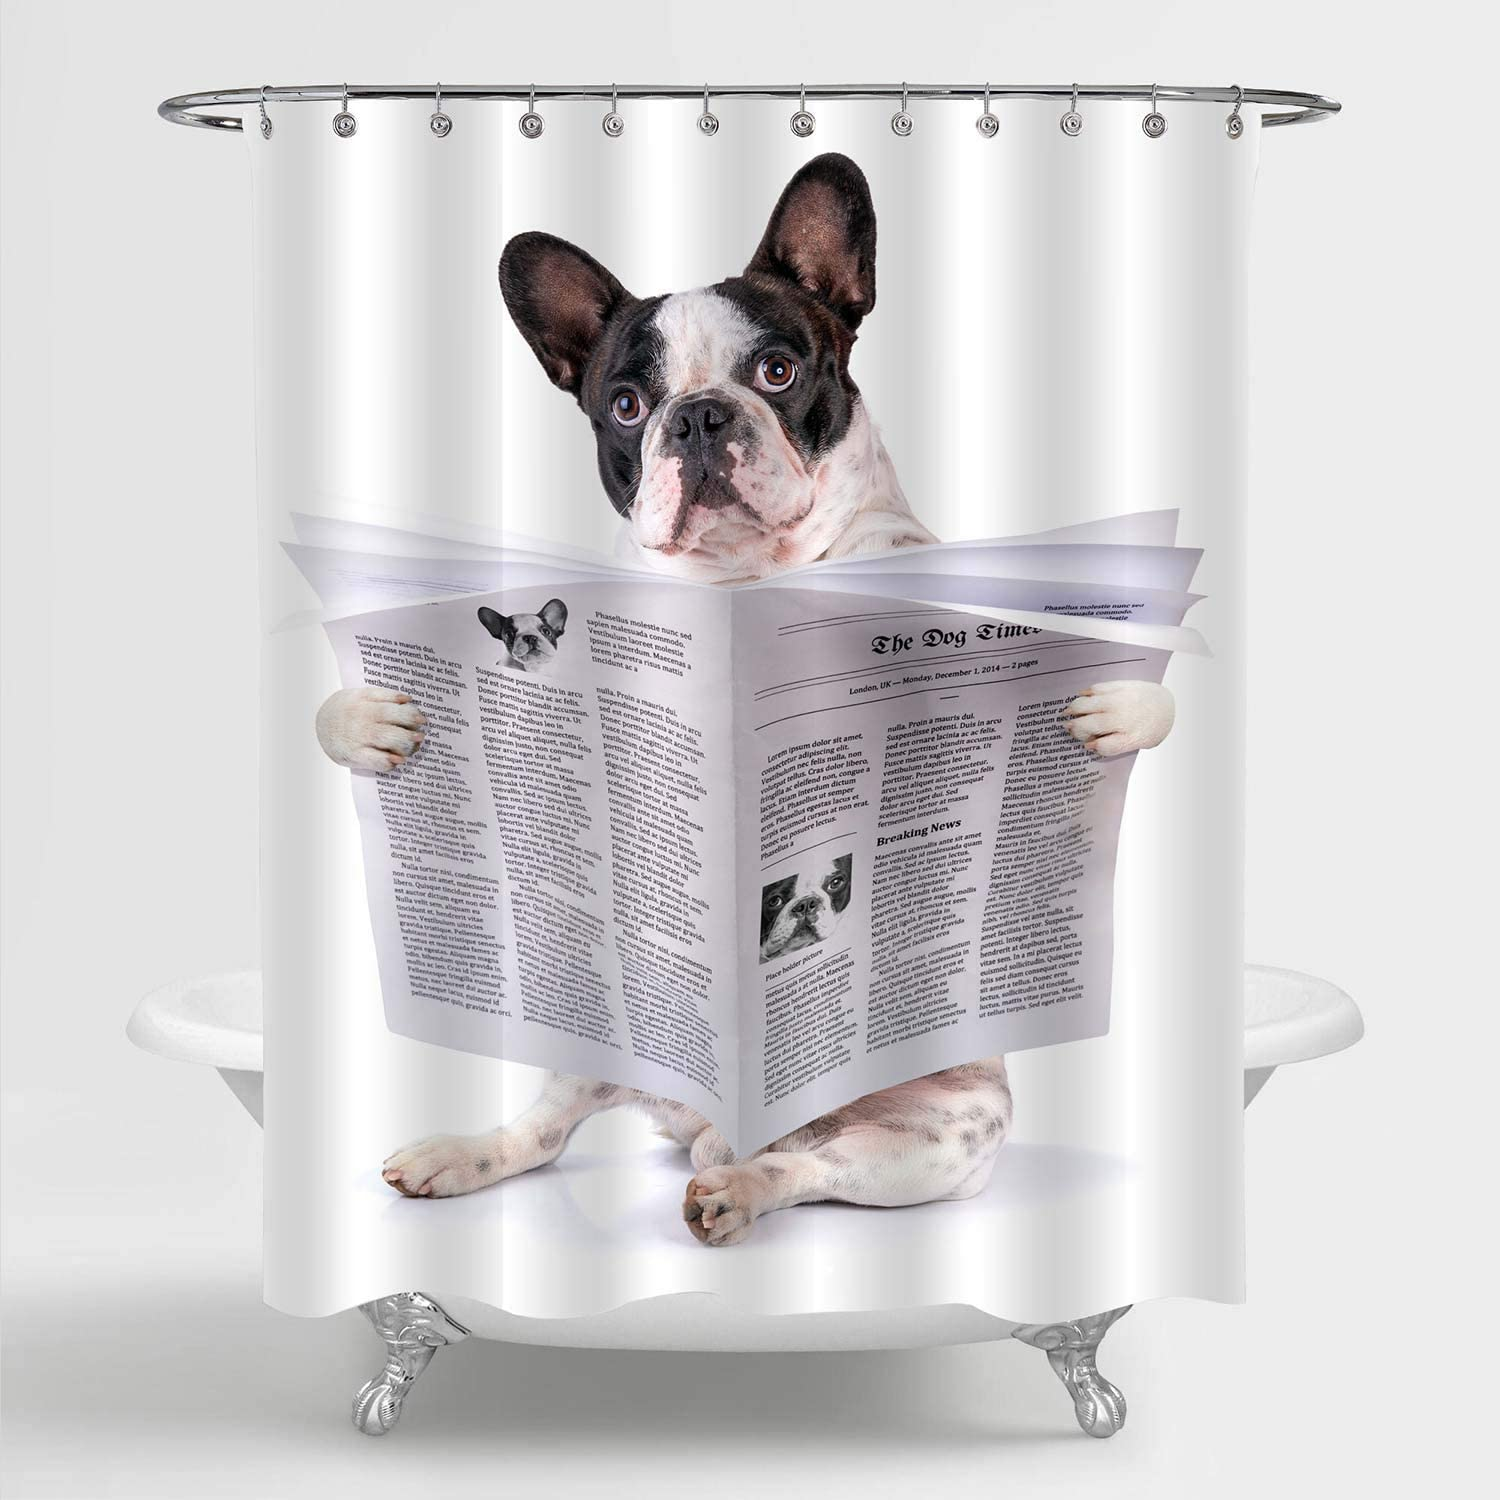 "MitoVilla Cartoon Dog Shower Curtain, Funny French Bulldog Reading Newspaper Painting Bathroom Accessories for Pet Themed Baby Kids and Animal Lovers Room Decor, 72"" W x 78"" L Long for Shower Tub"